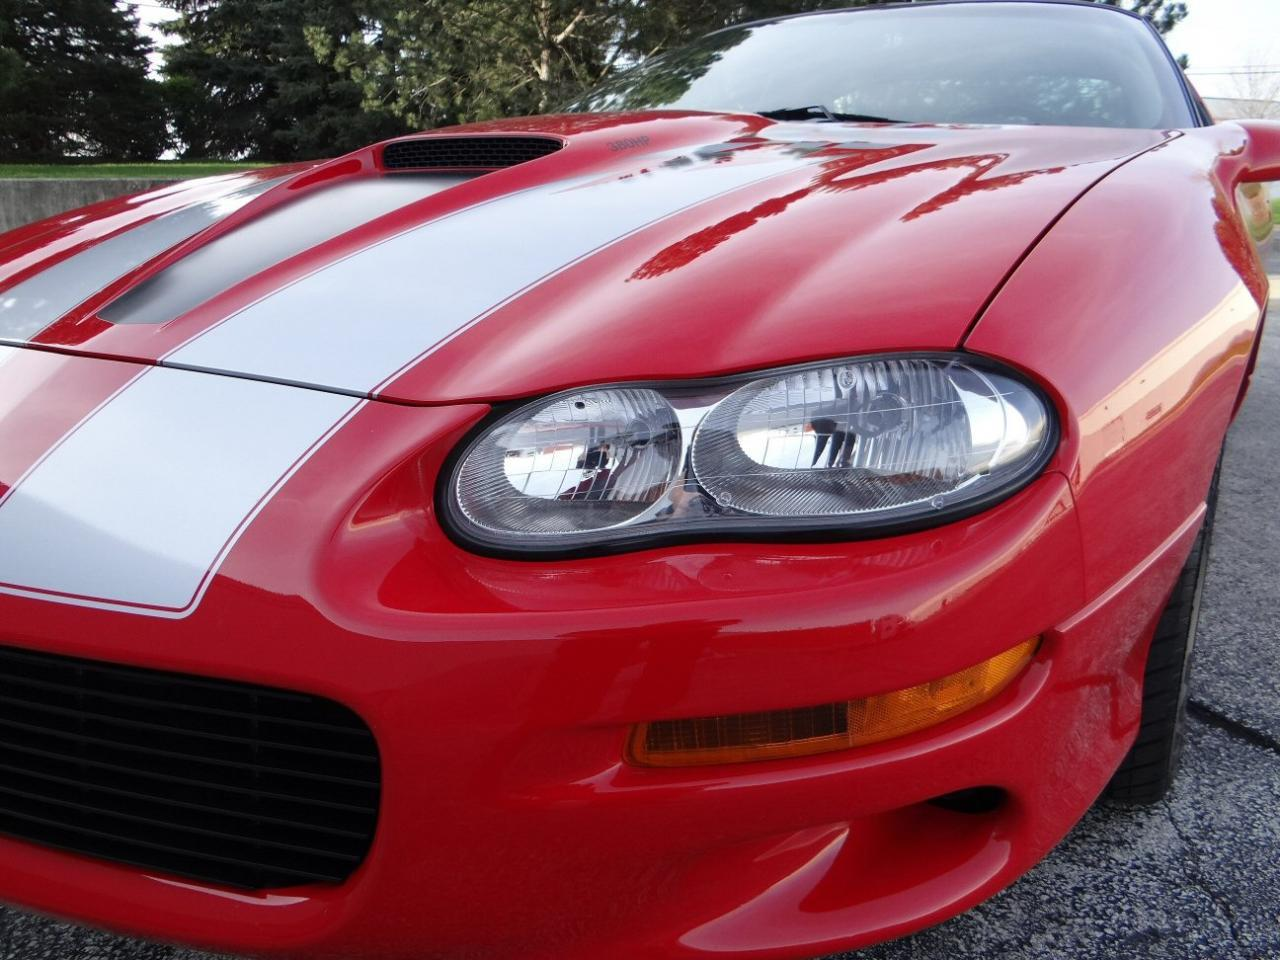 Large Picture of 2002 Camaro - $25,995.00 - L44H